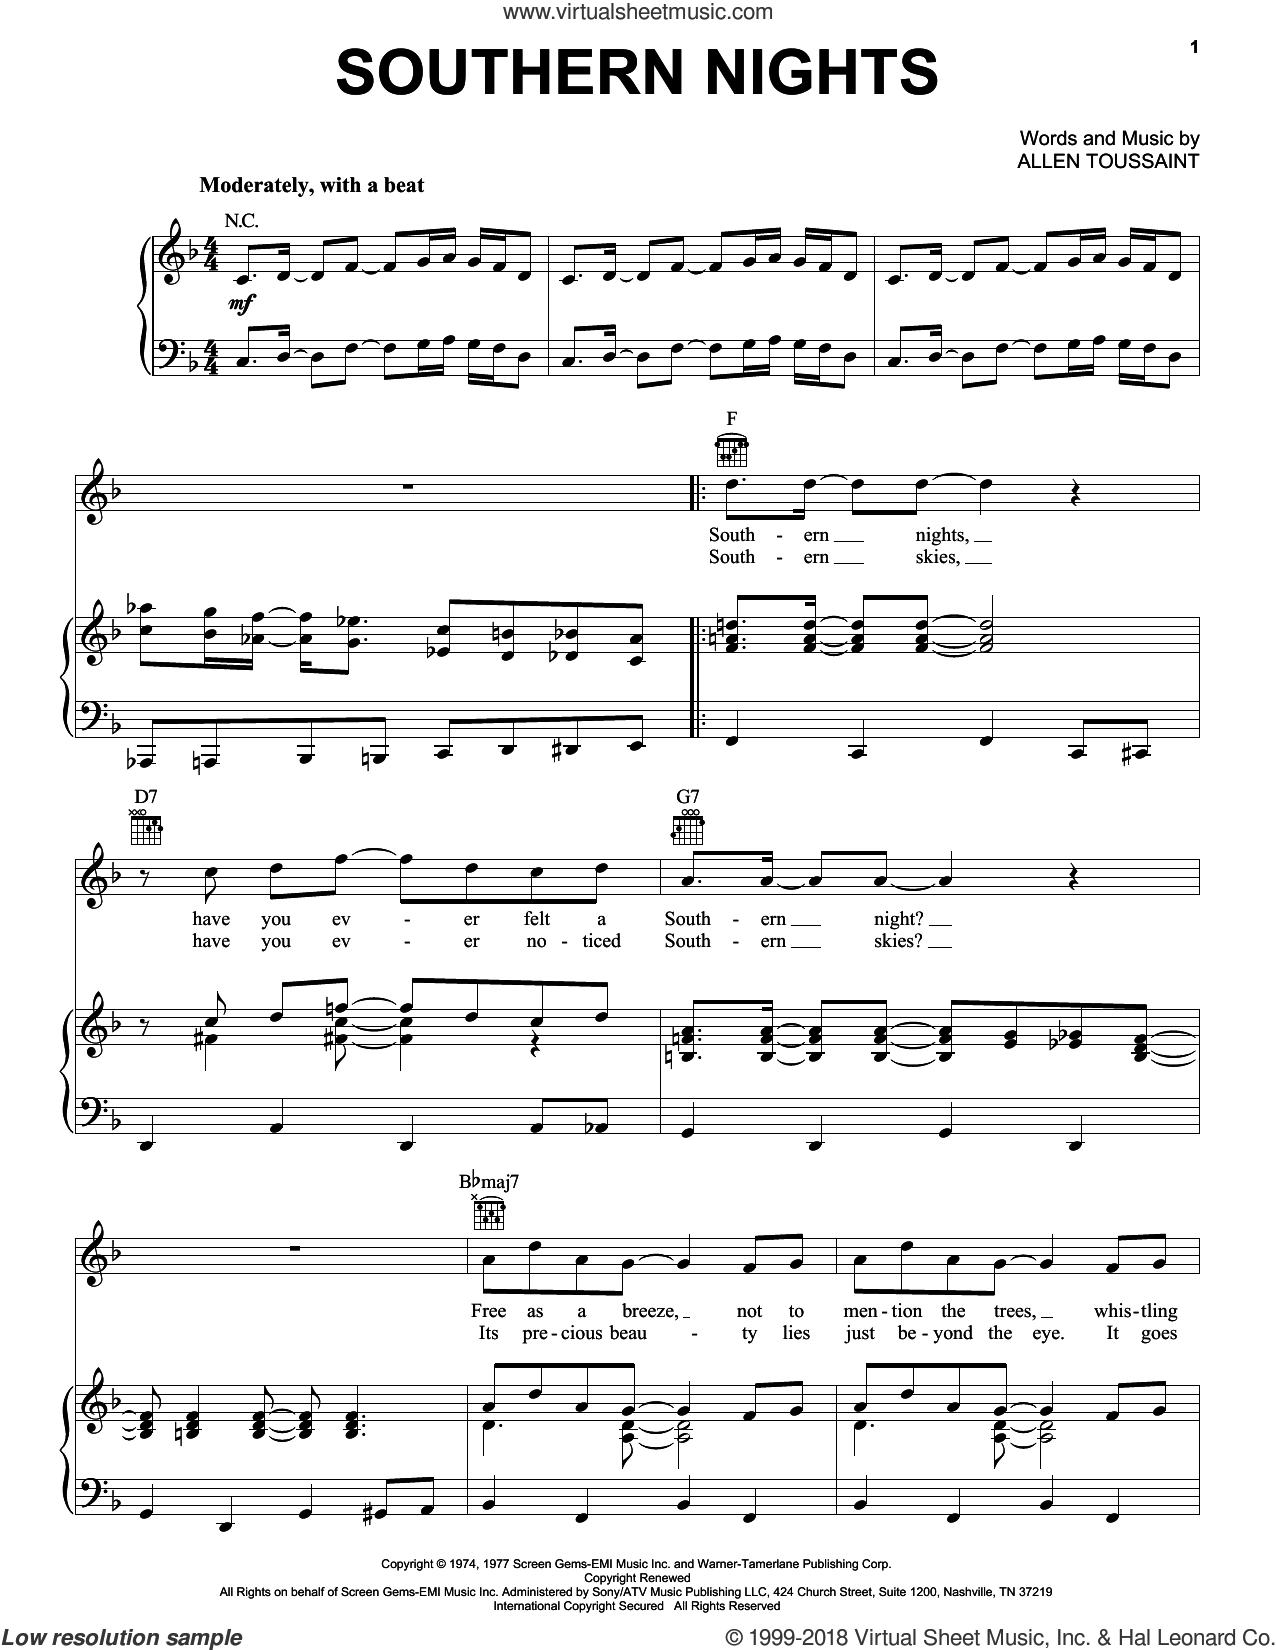 Southern Nights sheet music for voice, piano or guitar by Glen Campbell